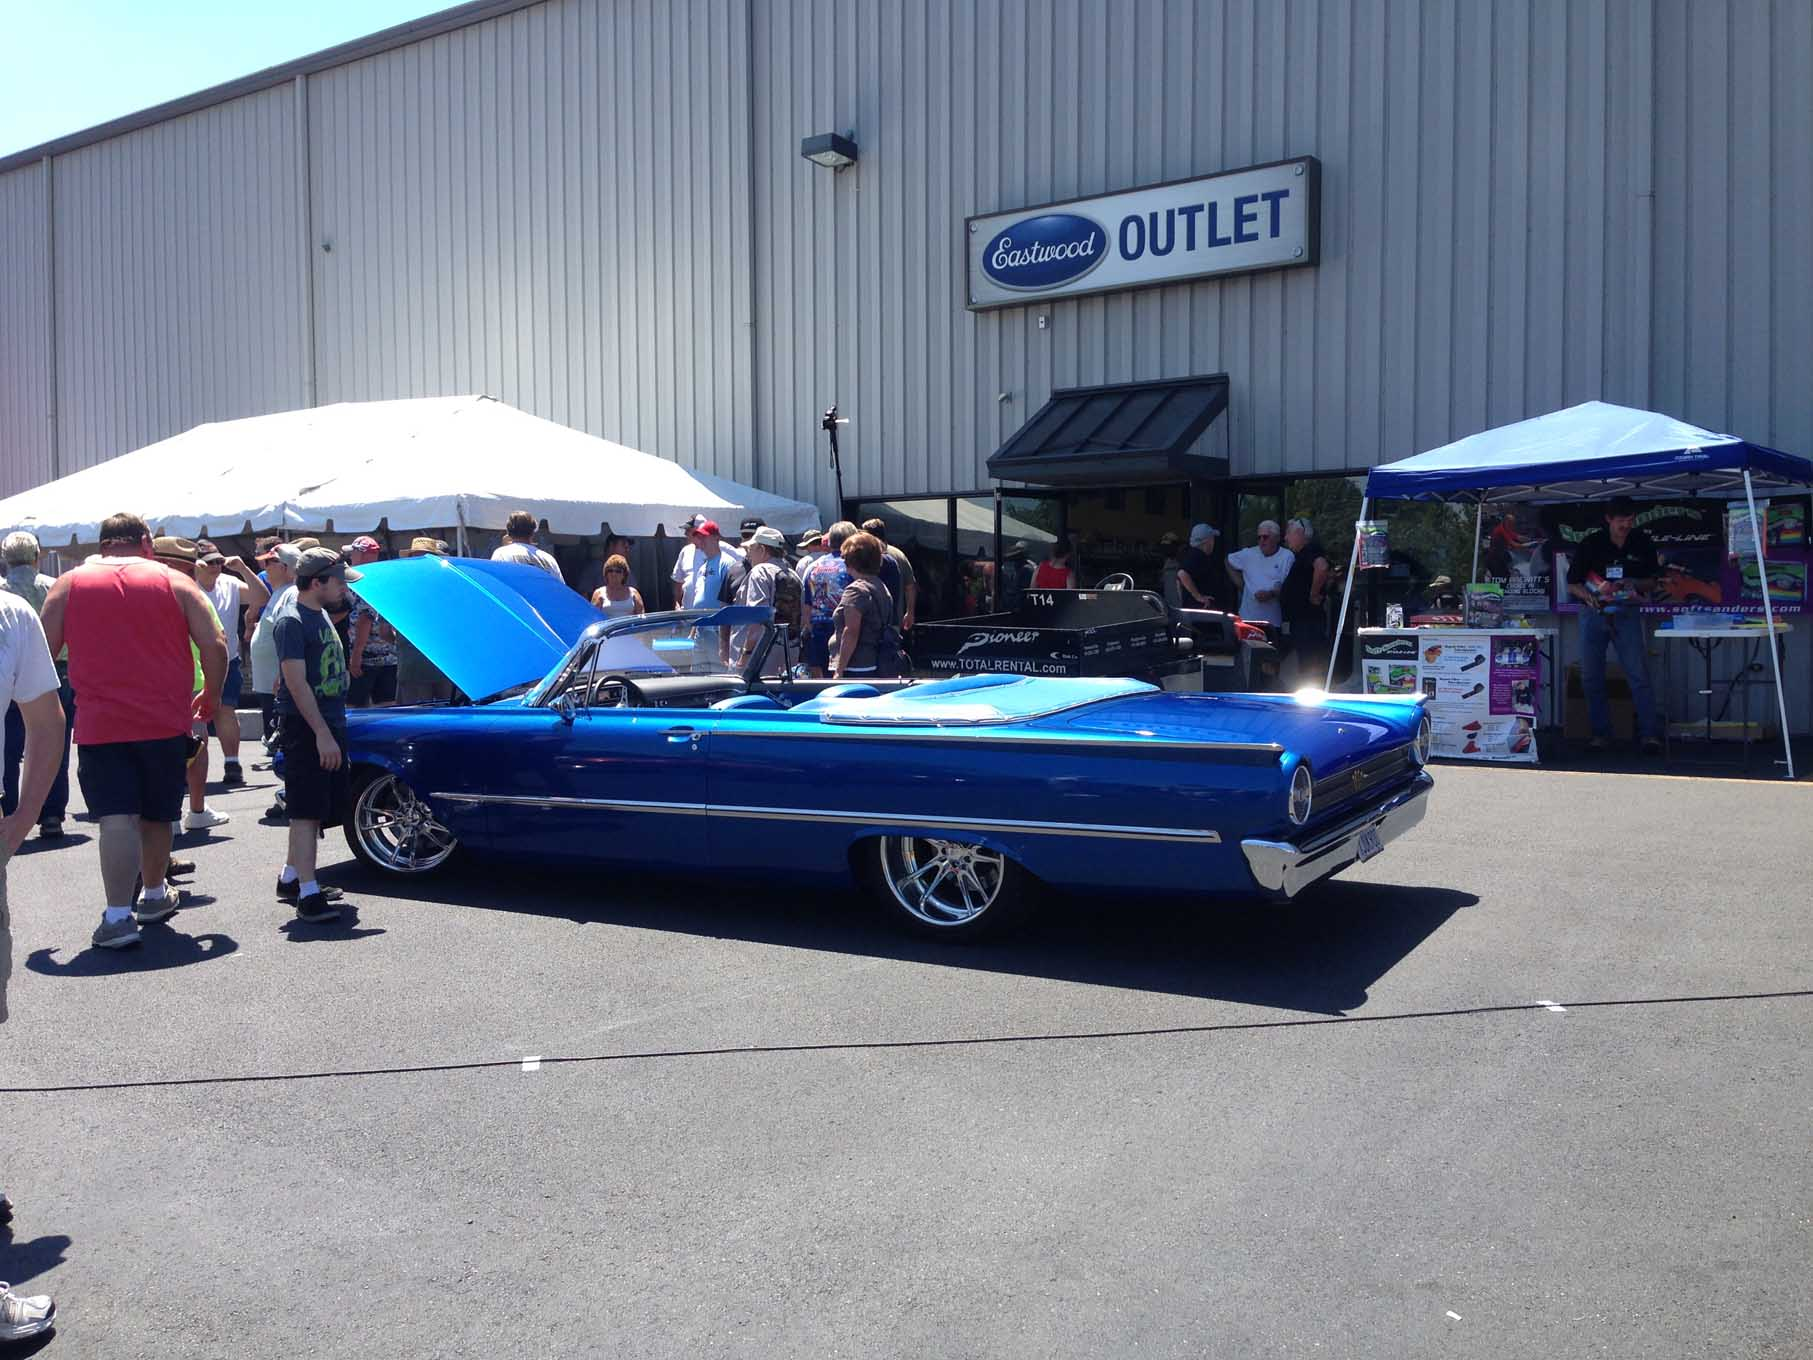 There was plenty to see and do all day for both spectators and participants. Tech seminars, product demonstrations, charity raffles, and doorprize giveaways kept everyone busy. The swap meet area was new this year. By awards time at 3 p.m. everyone agreed that it was by far the best Eastwood Summer Classic yet.